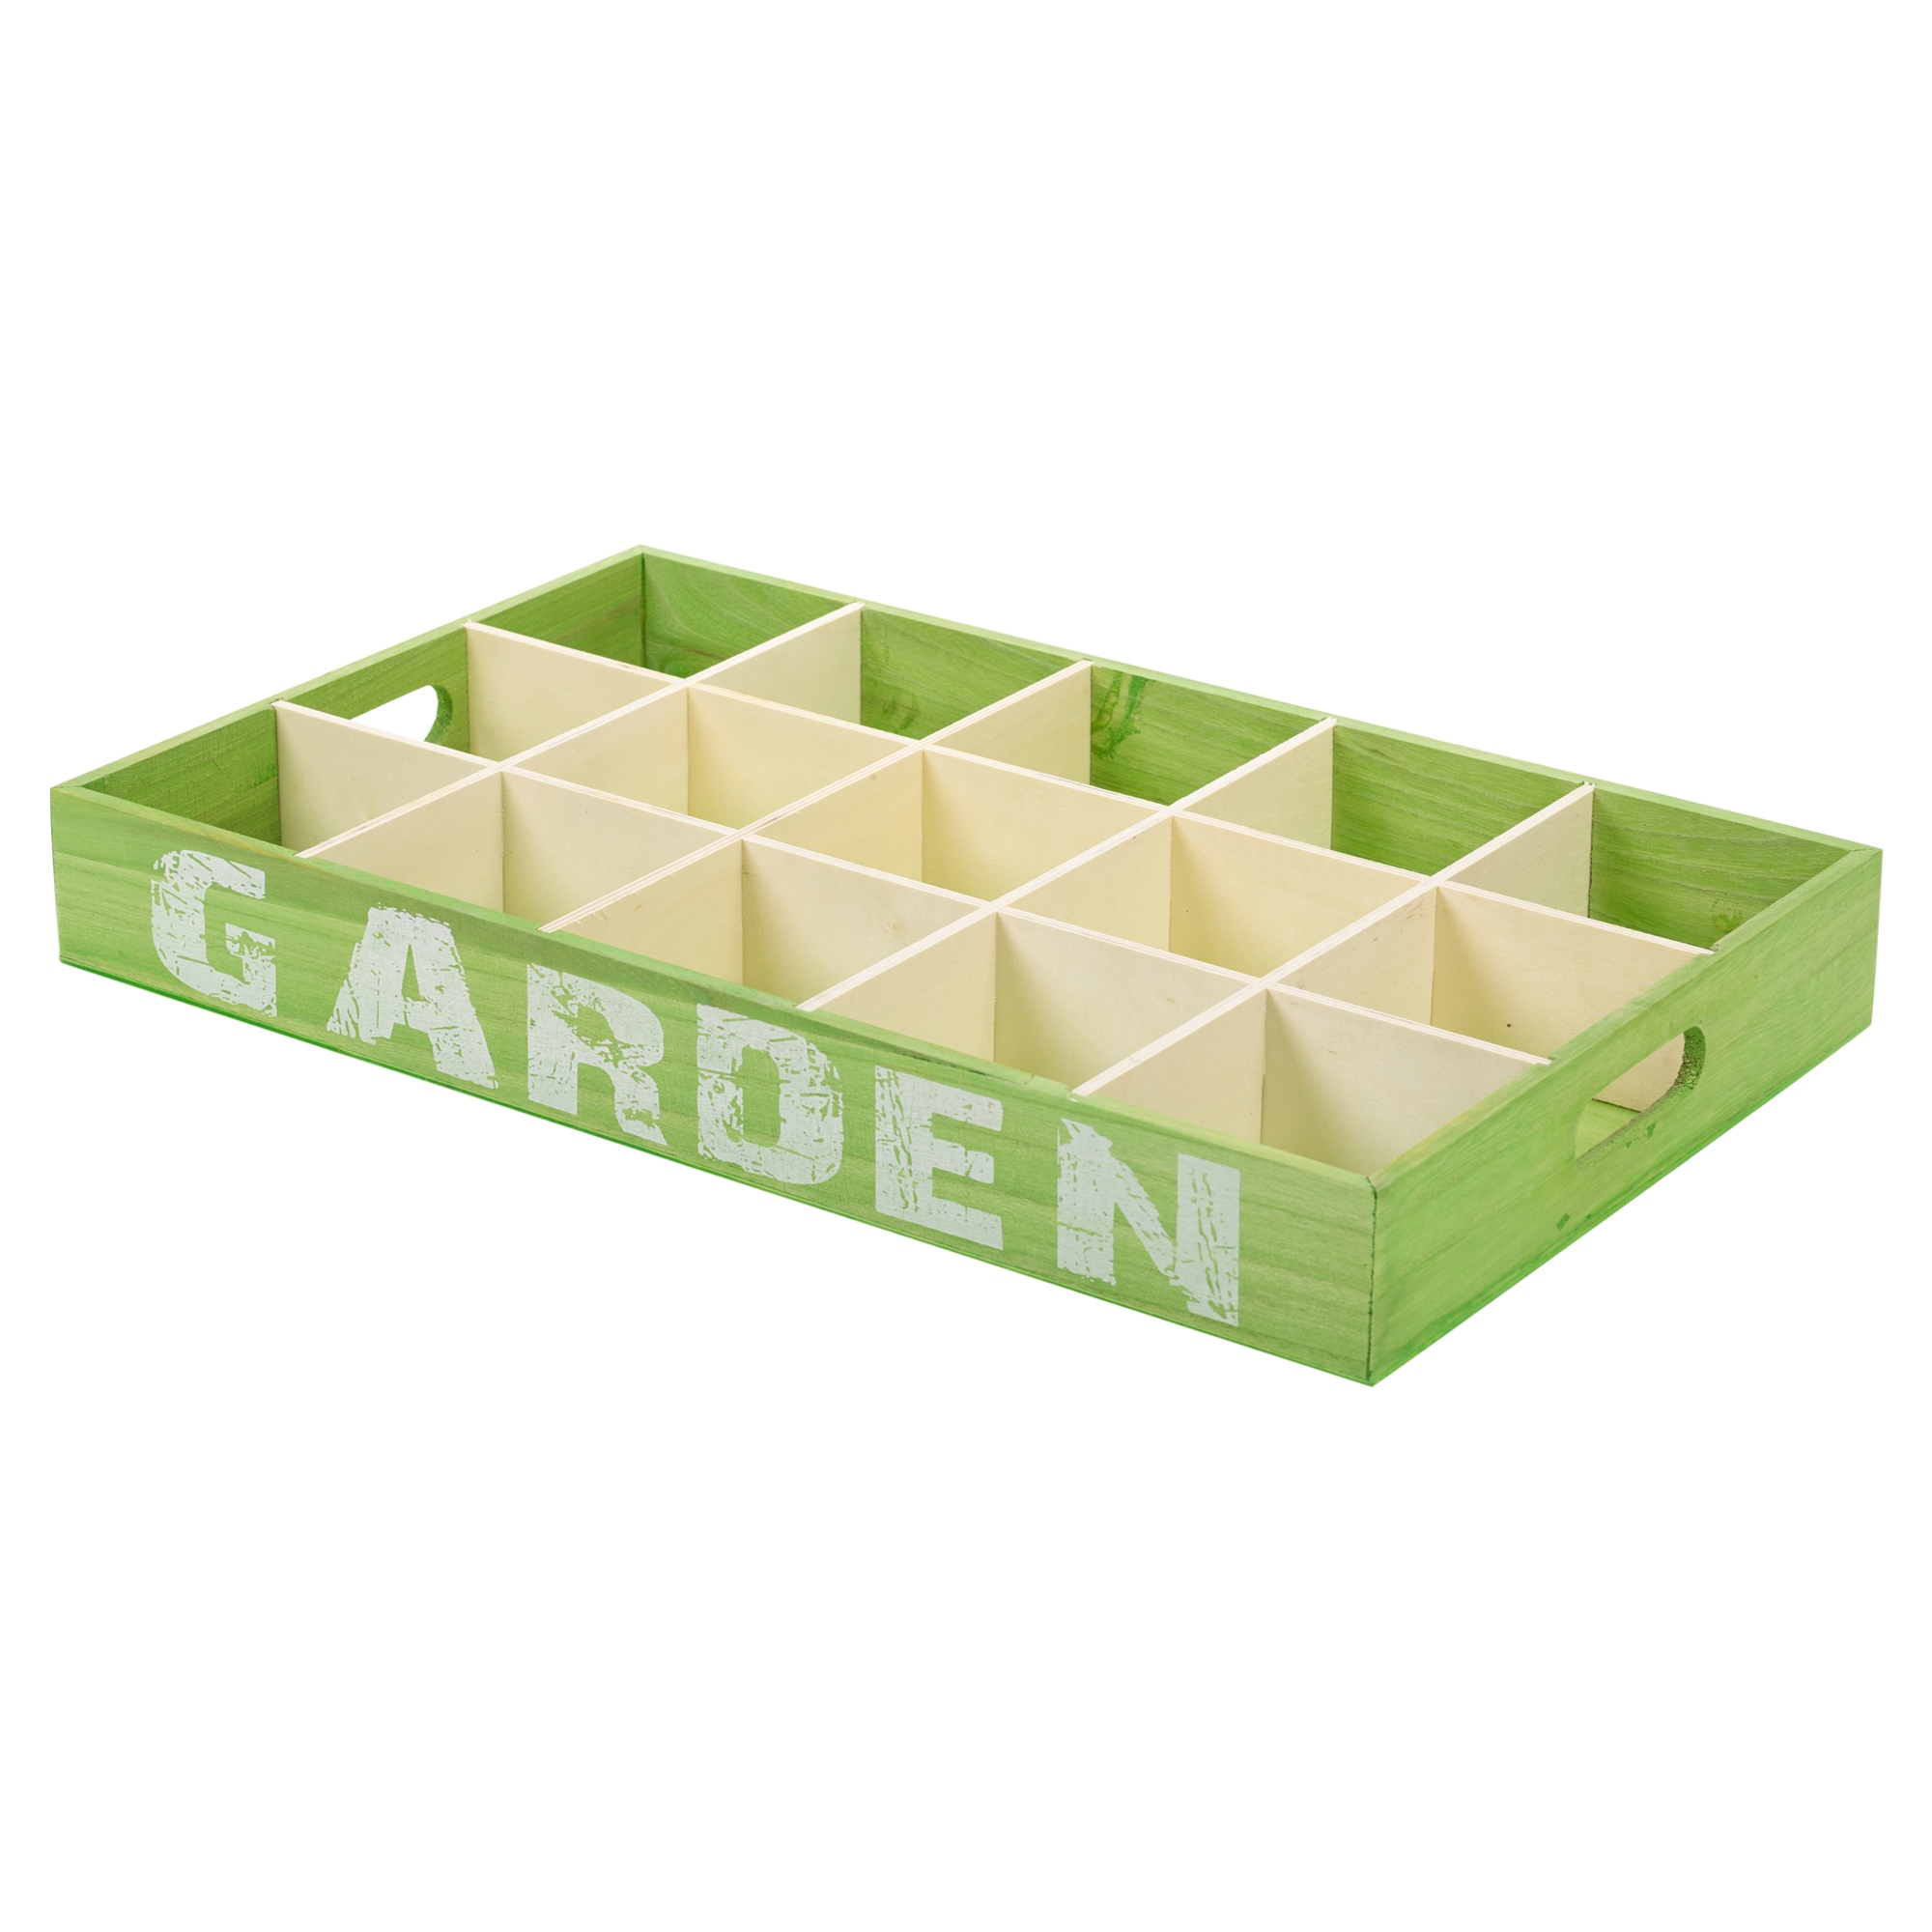 12 Plant Pots Wooden Growing Tray Flowers Herbs Plants